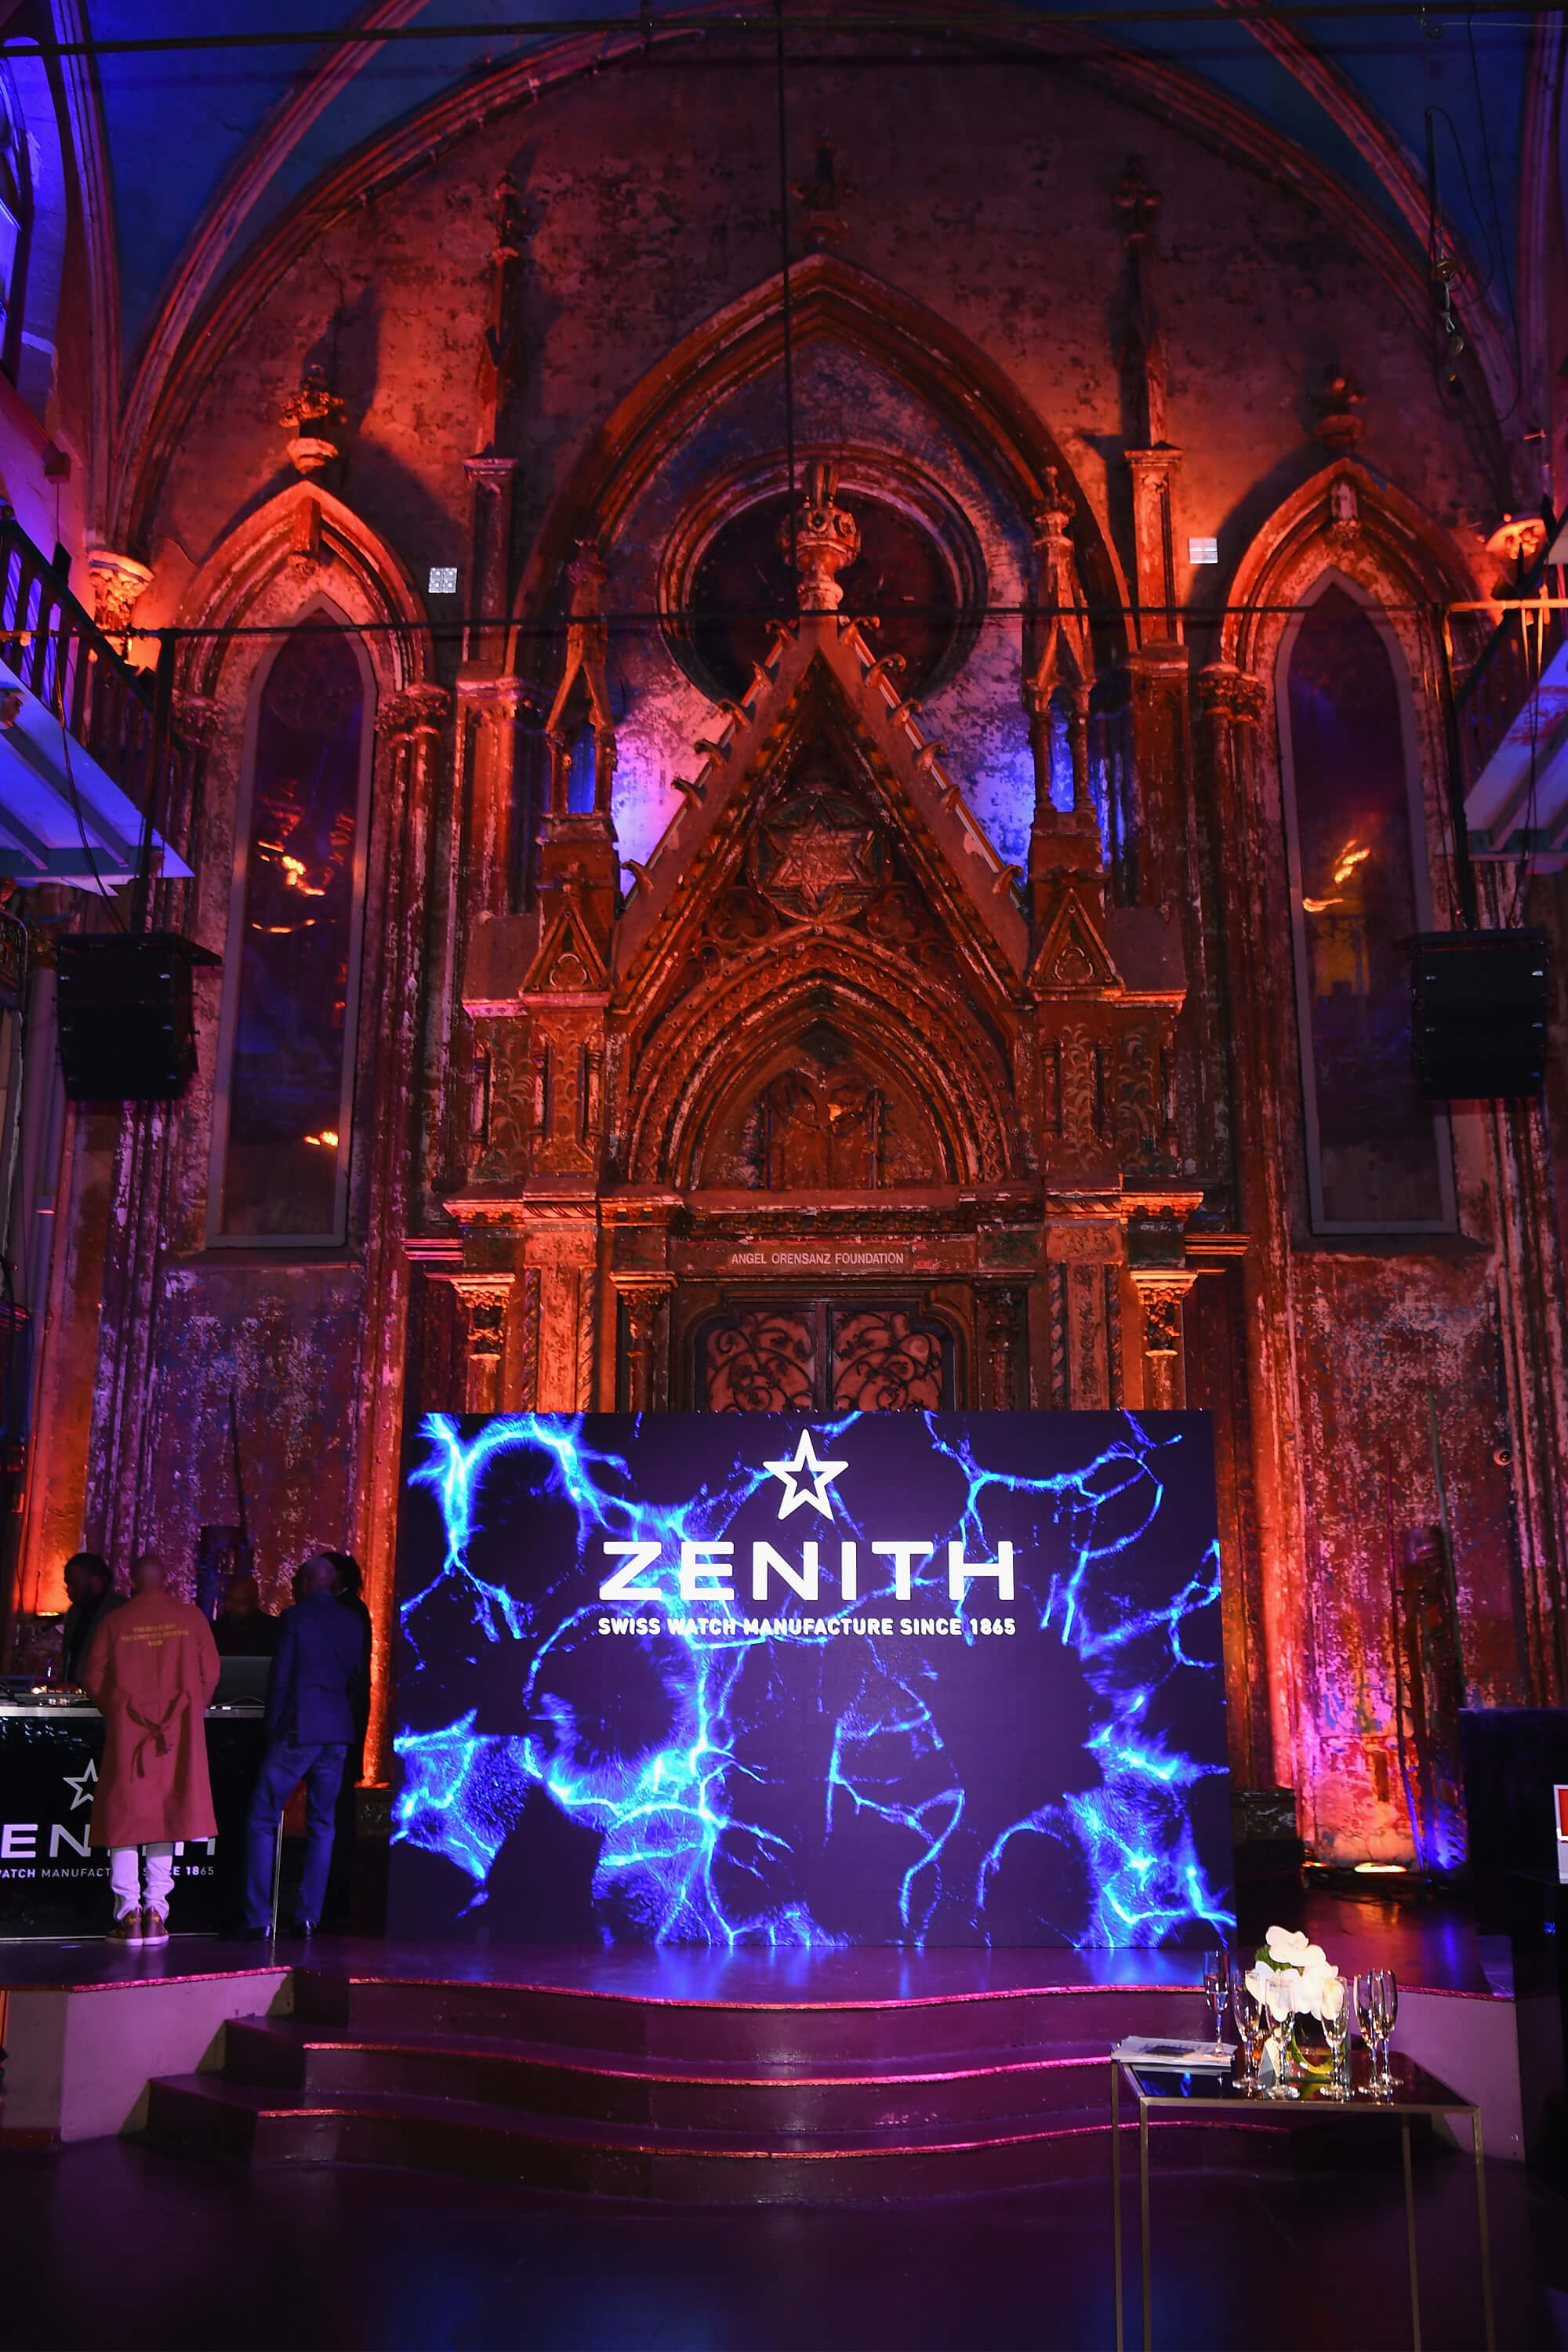 ZENITH - Event place - Getty Images